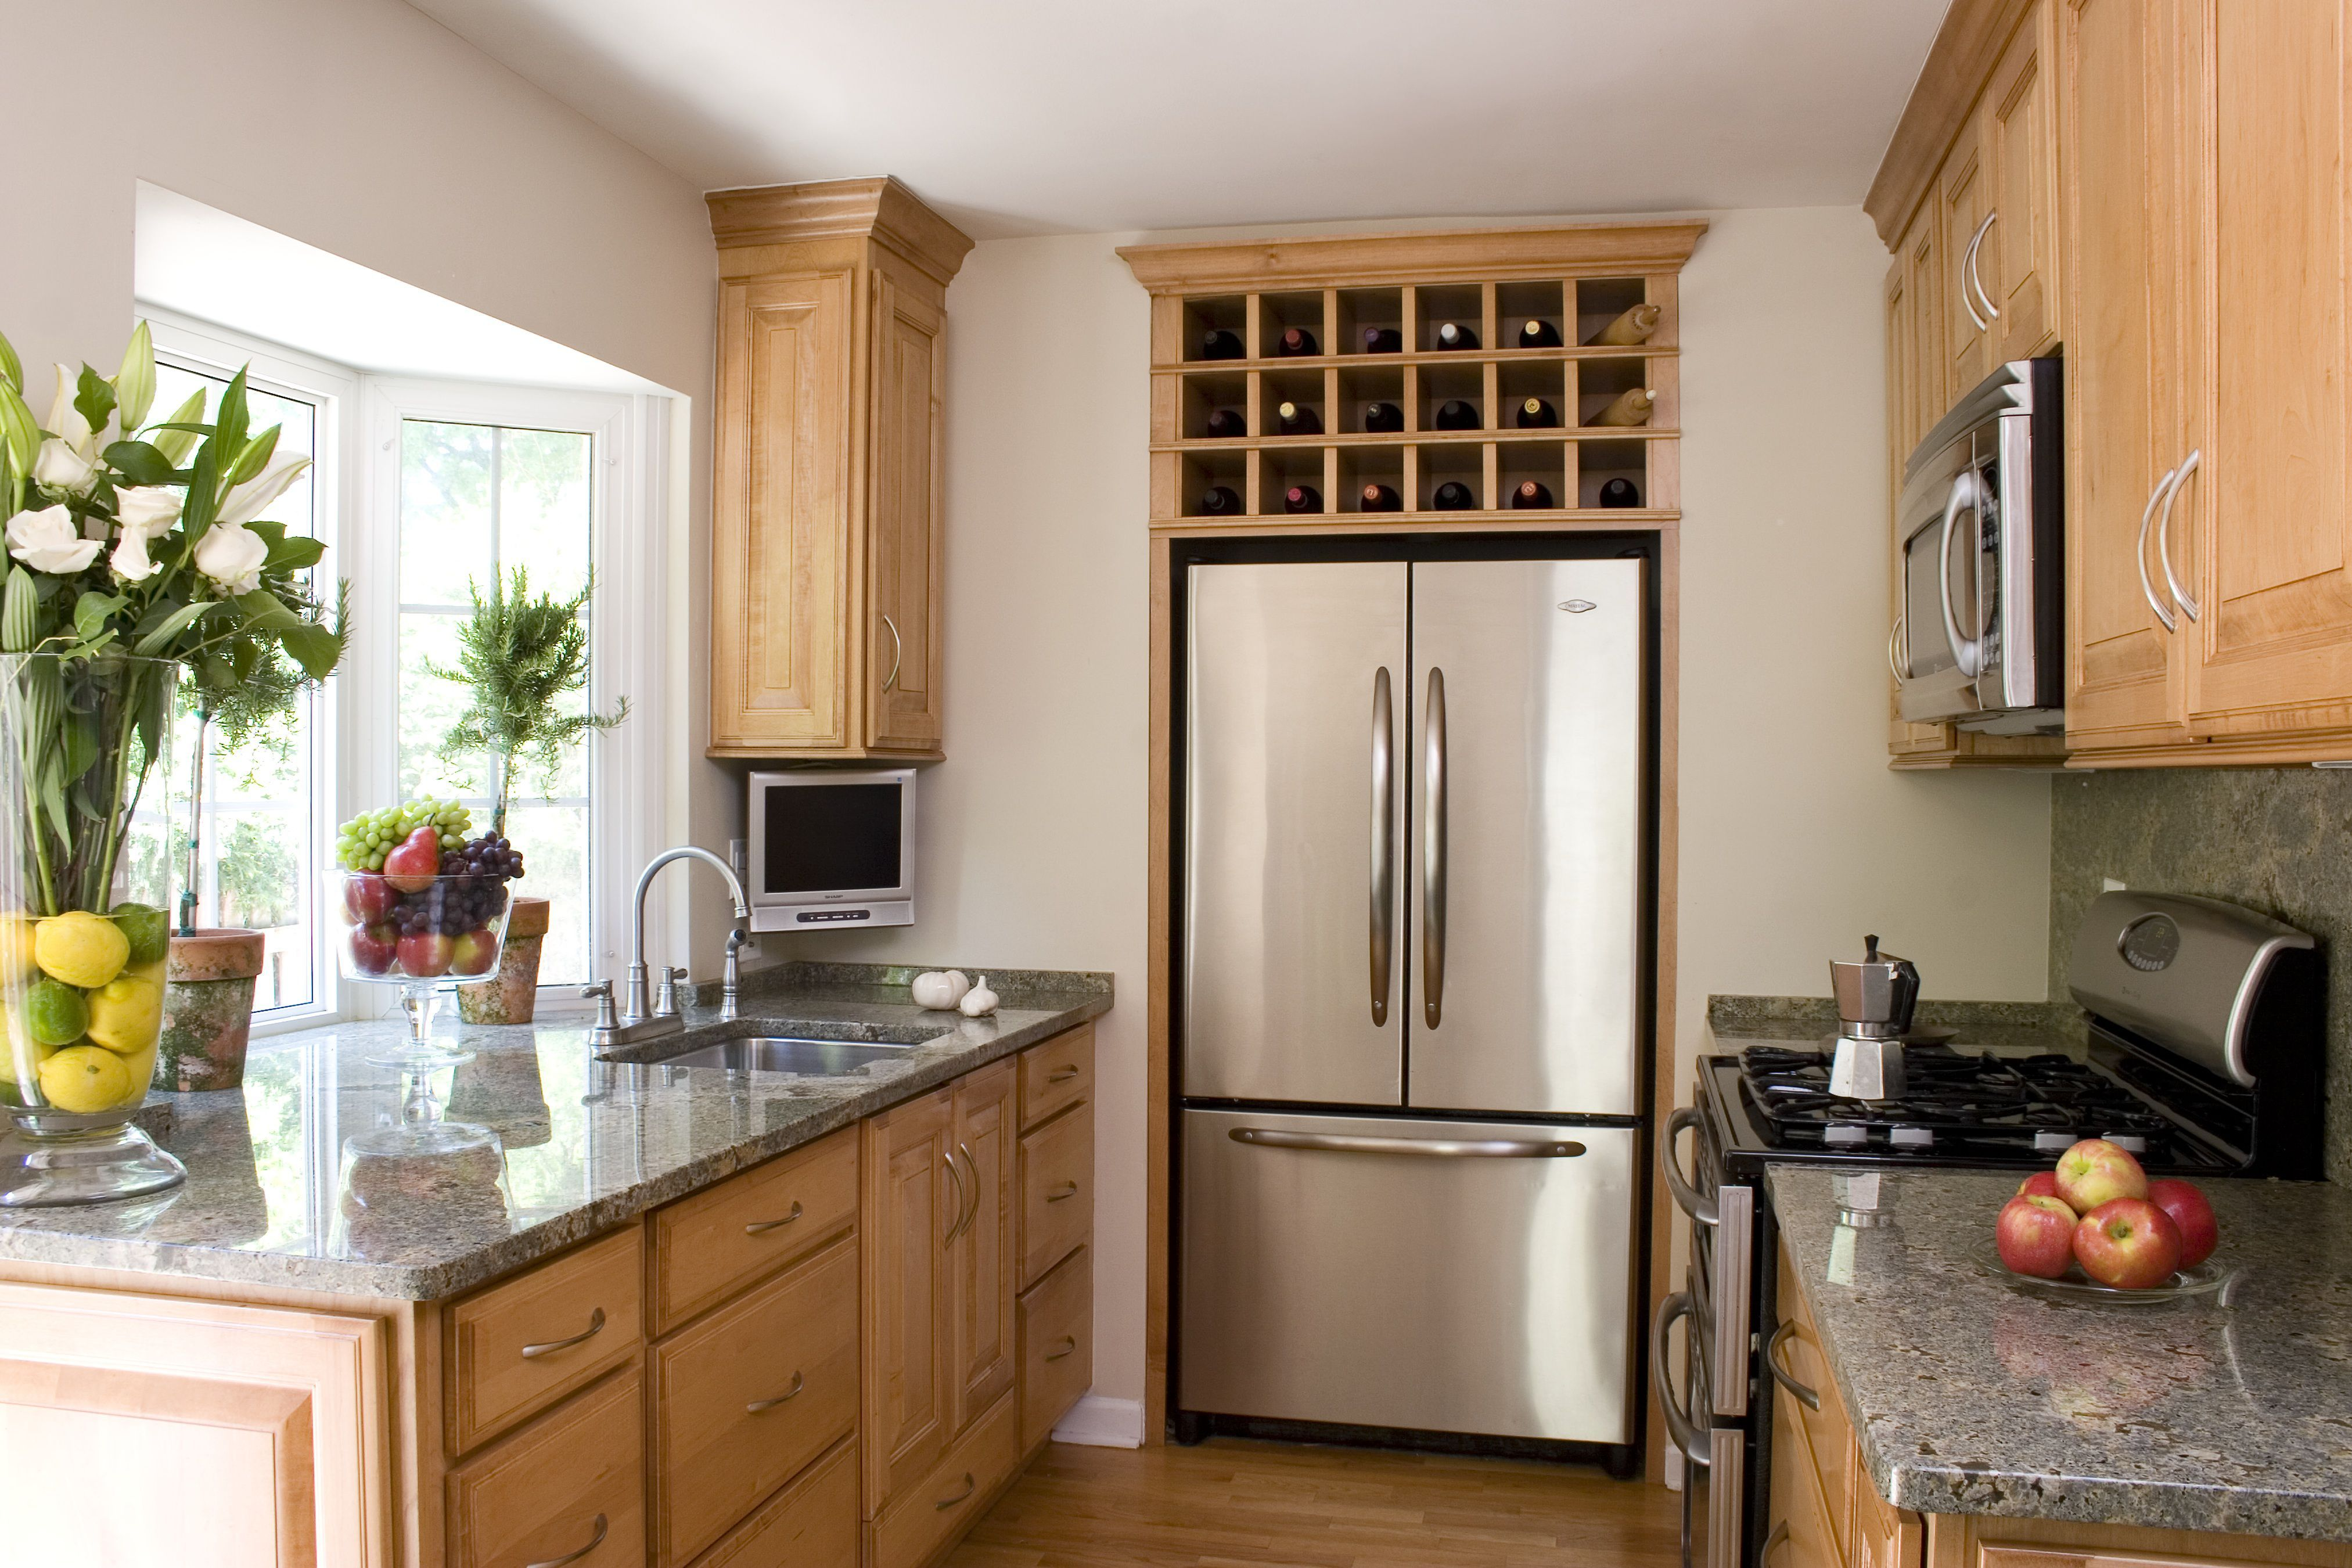 House Tour Smart Design Ideas For Small Kitchens With Images Simple Kitchen Design Small Space Kitchen Small Kitchen Decor